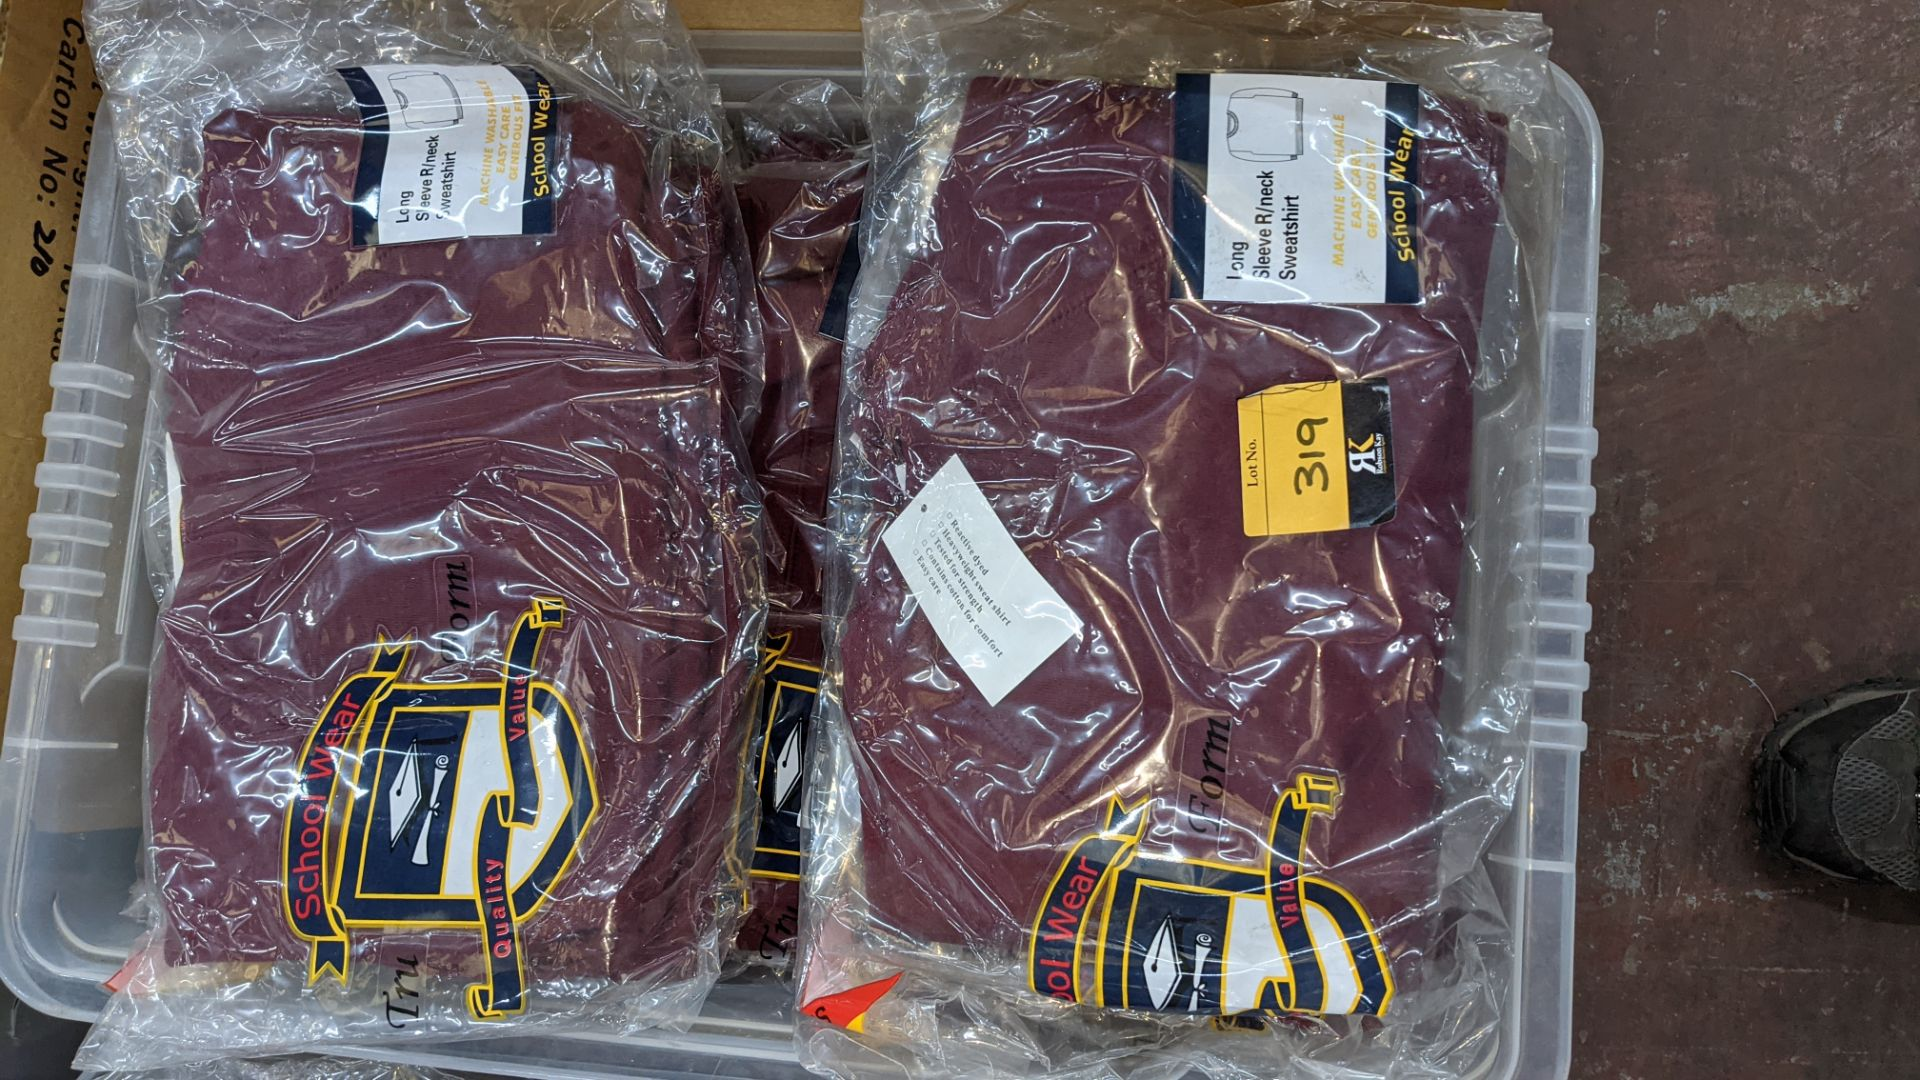 Approx 27 off burgundy children's sweatshirts & similar - the contents of 1 crate. NB crate exclude - Image 3 of 4